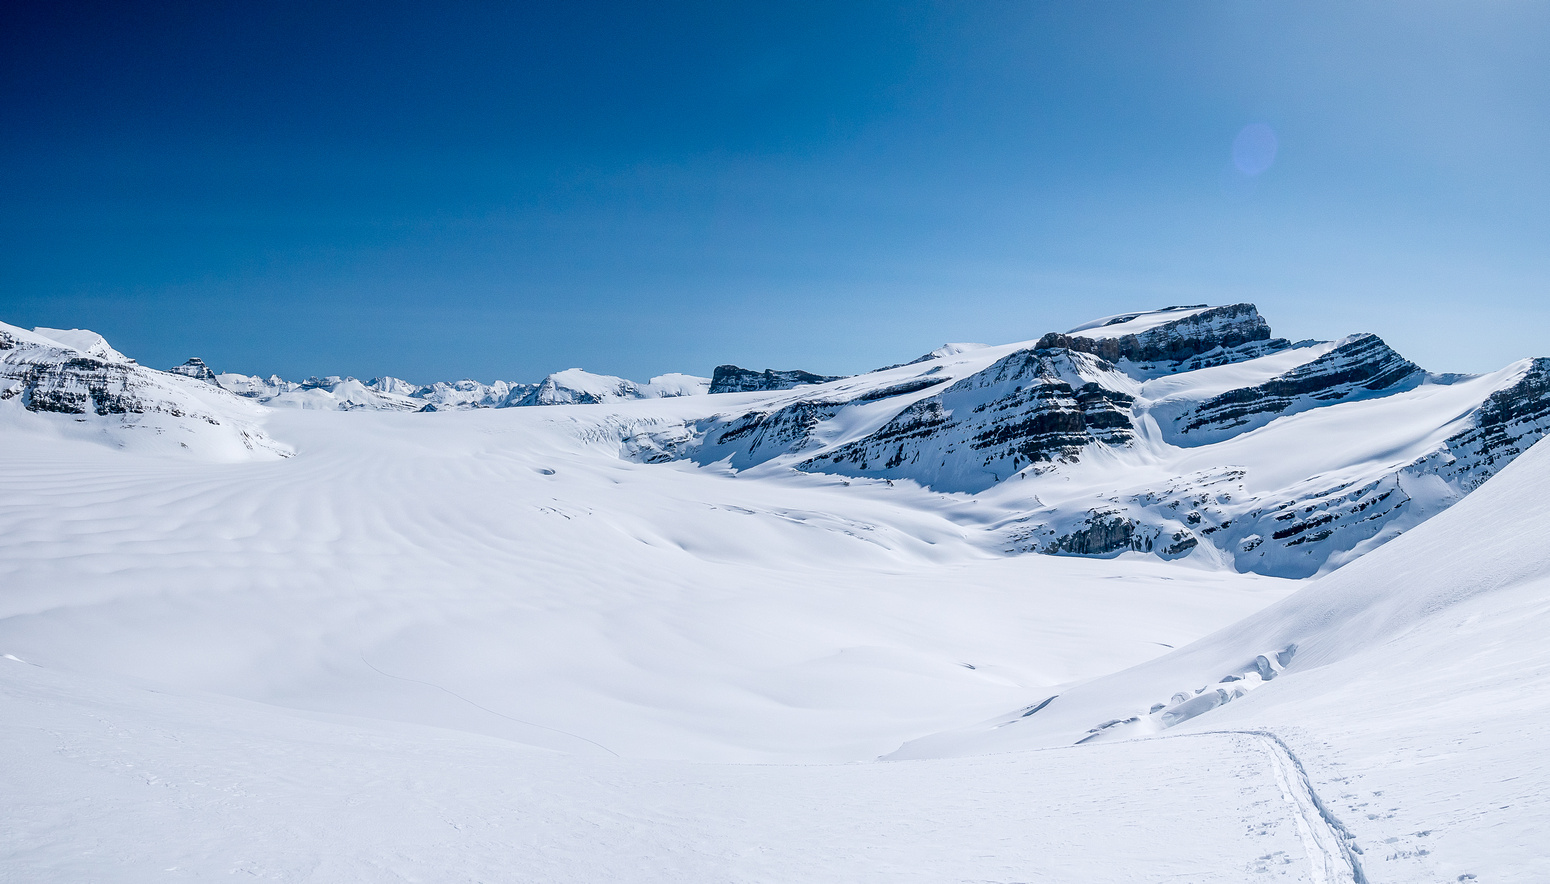 A gorgeous day to be in the mountains, looking back - can't wait to ski this on the way down!